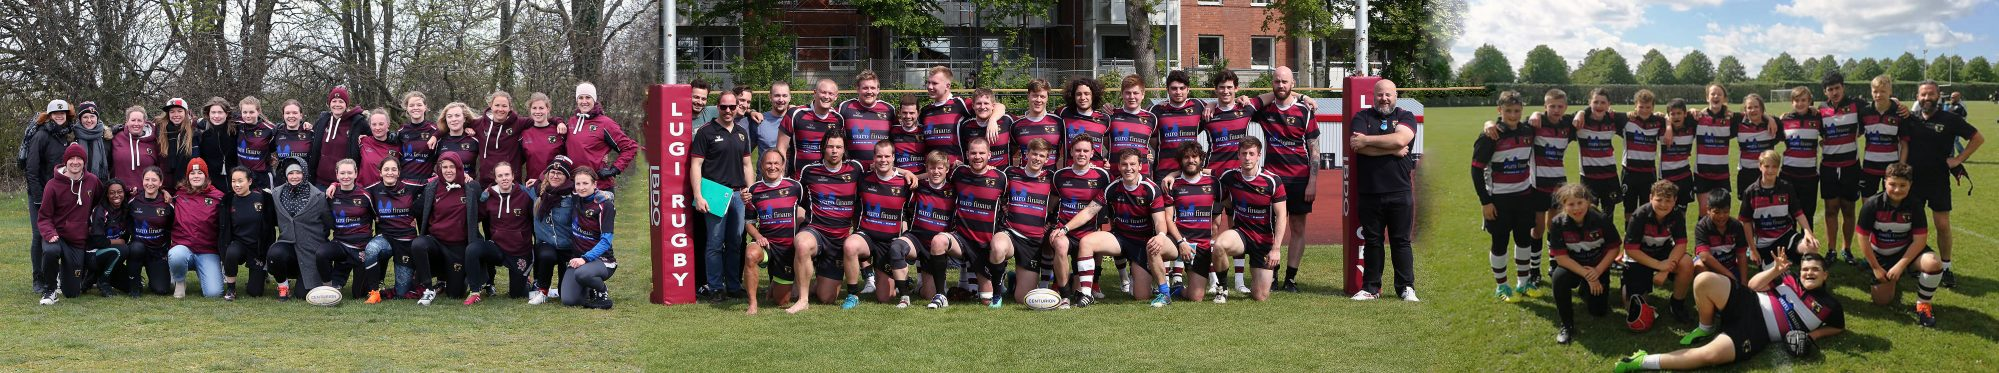 Lugi Lions Rugby Football Club